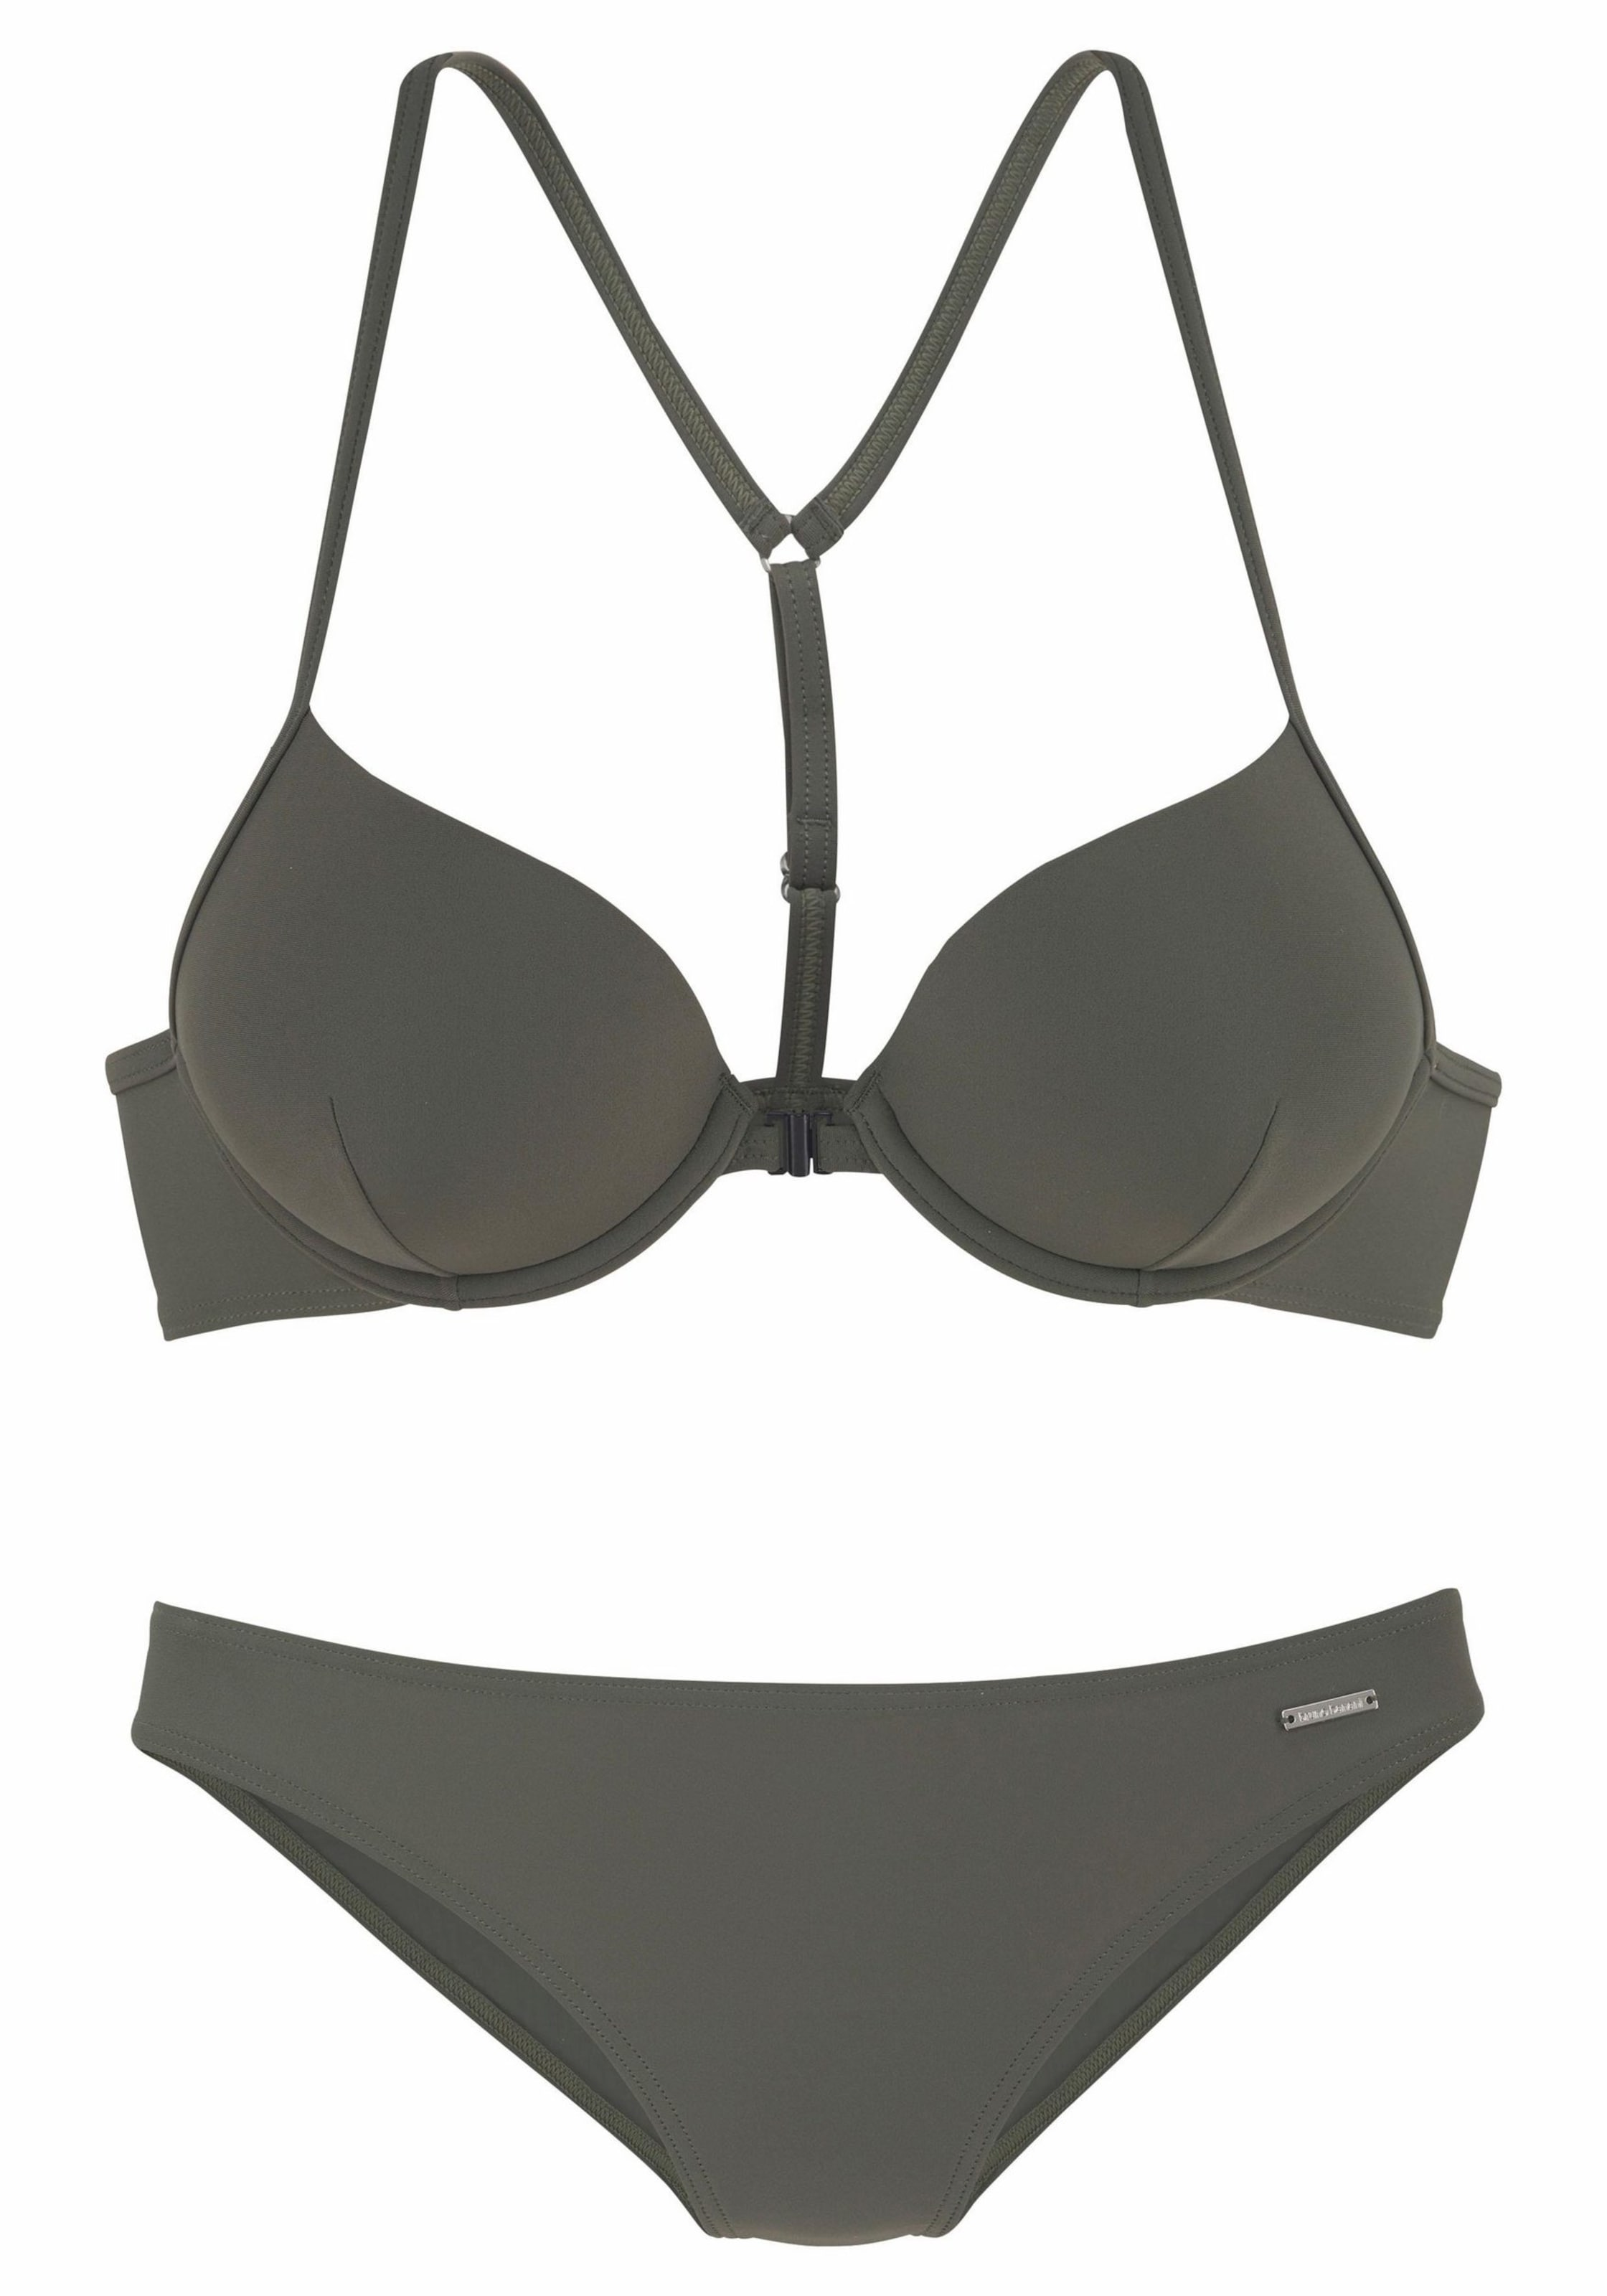 Oliv up Push Banani bikini Bruno In 5AL4jq3RSc